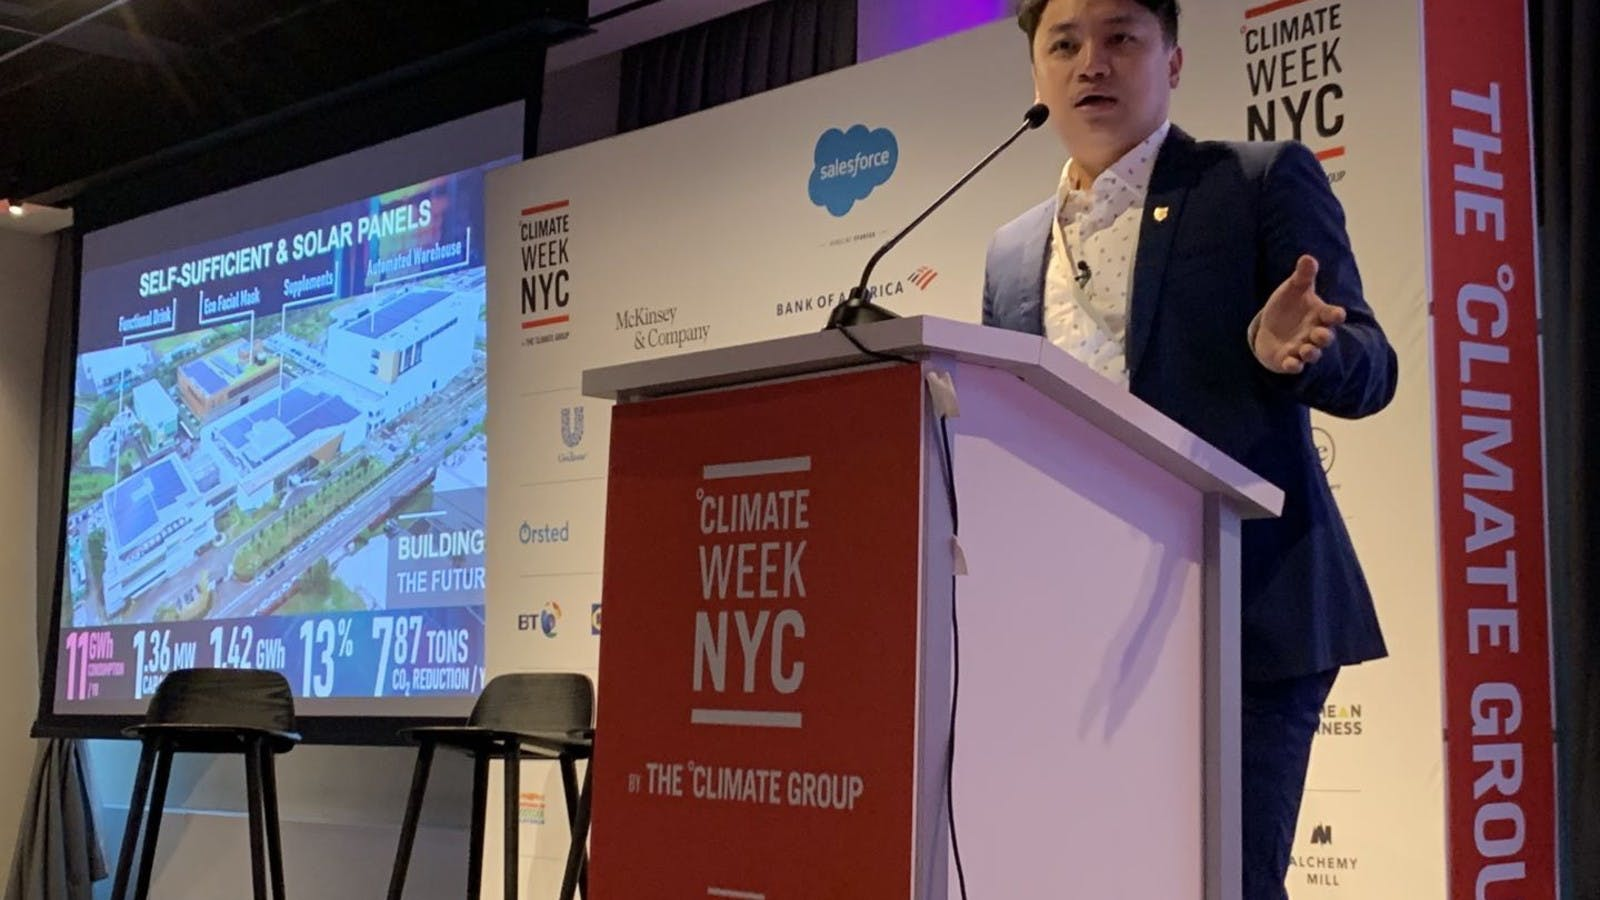 TCI was invited to join the Climate Week NYC